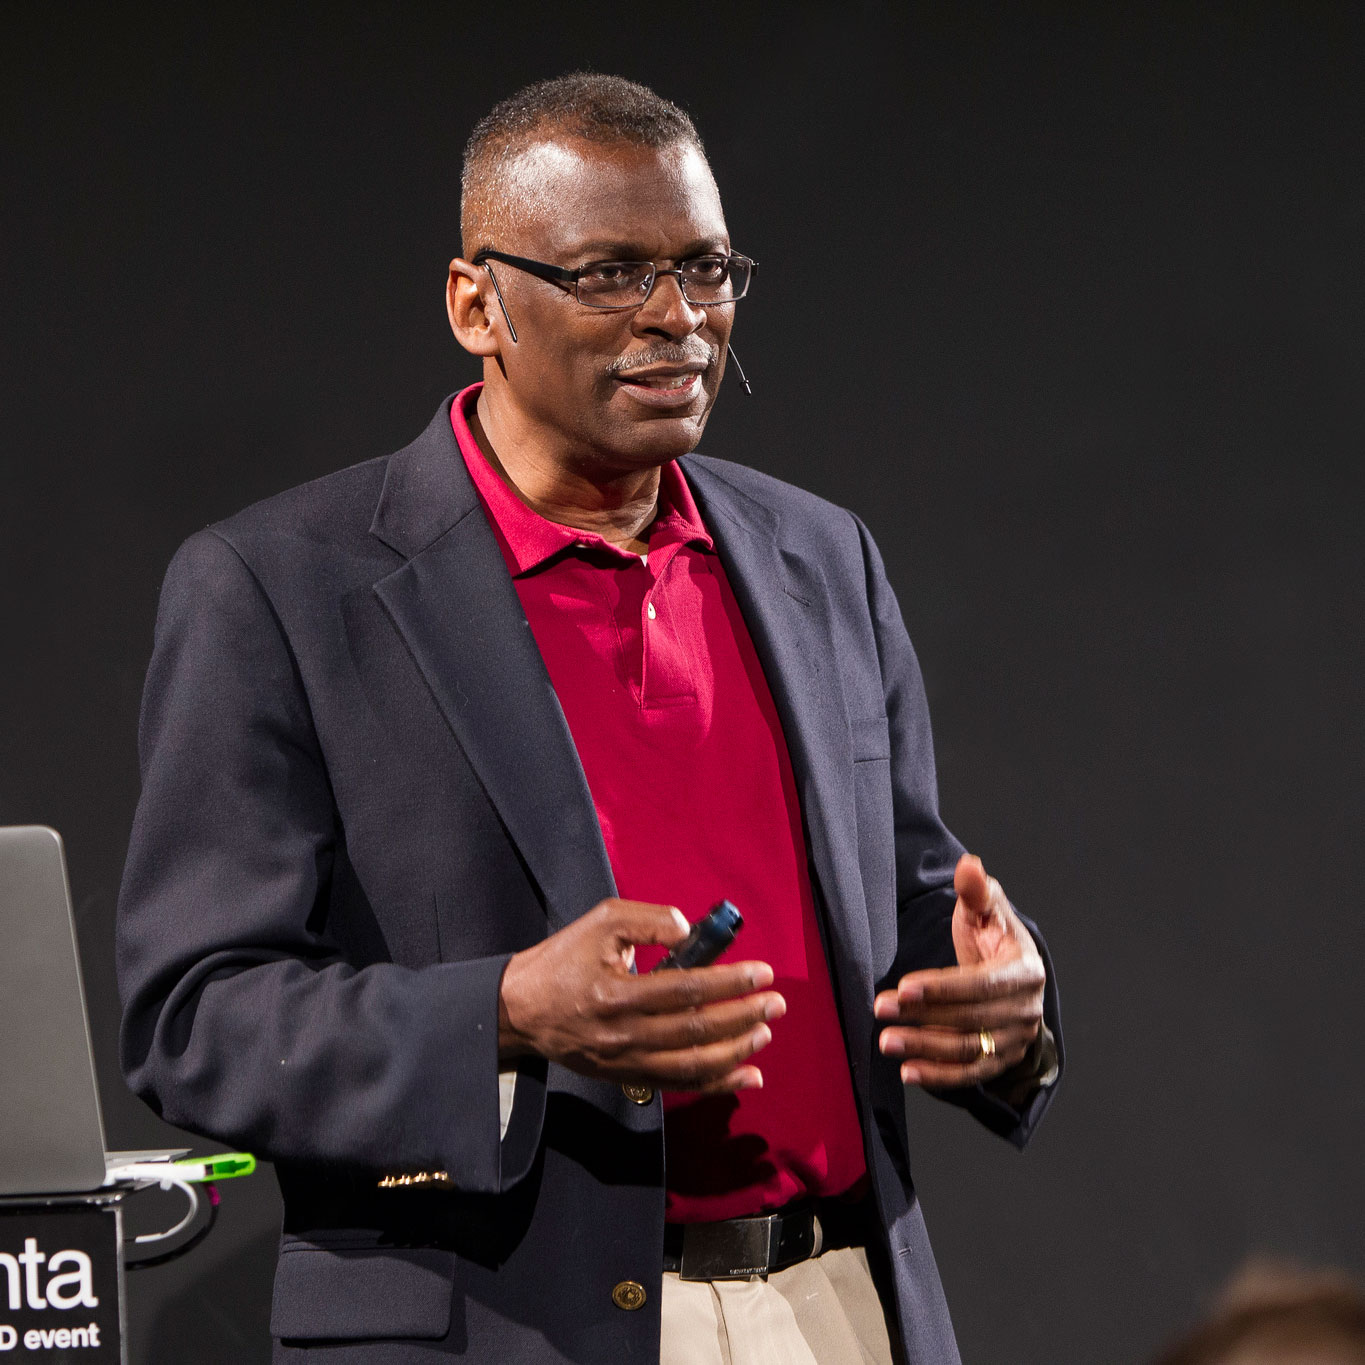 Mobile Pool From Nasa To The Super Soaker: How Lonnie Johnson Changed